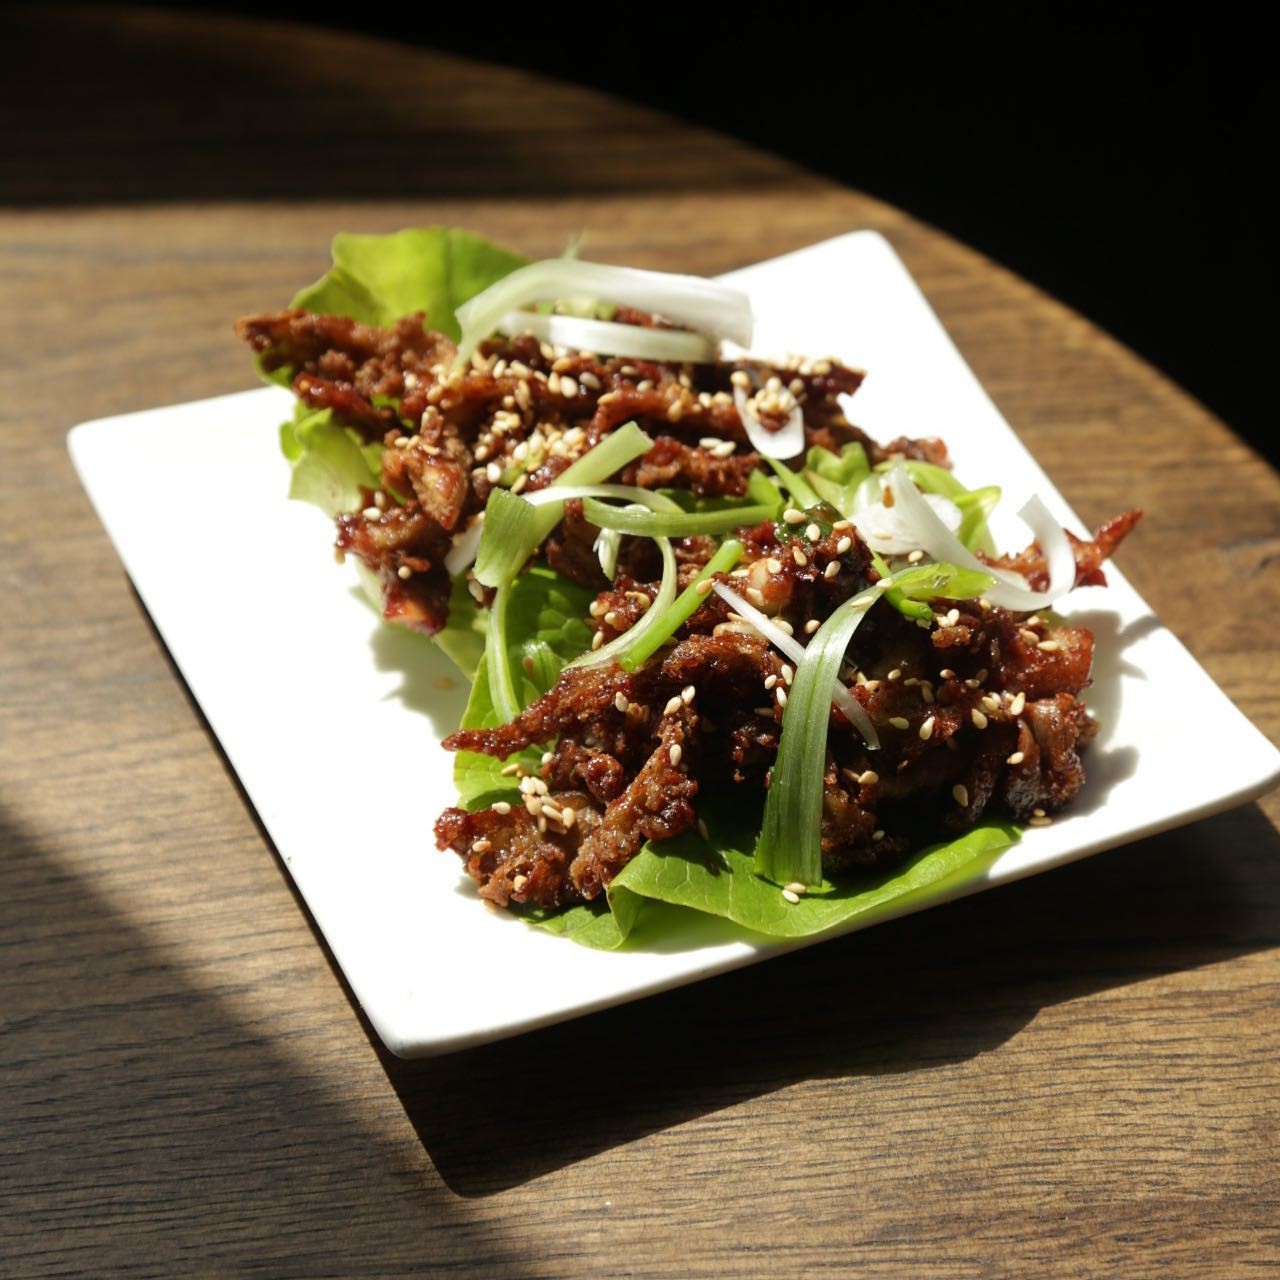 🌱Vegan🌱  A new addition to our small plates selection! Crispy Chinese oyster mushrooms in hoisin sauce served with sesame and cucumber in a gem lettuce cup! 🍄🥬   #thealpaca #islington #angel #essexroad  #supportlocal #pub #pints #london #londonpubs #pubsoflondon #beer #craftbeer #chinesefood #vegan #veganfood #pubfood #food #foodie #instafood #veganlife #mushrooms